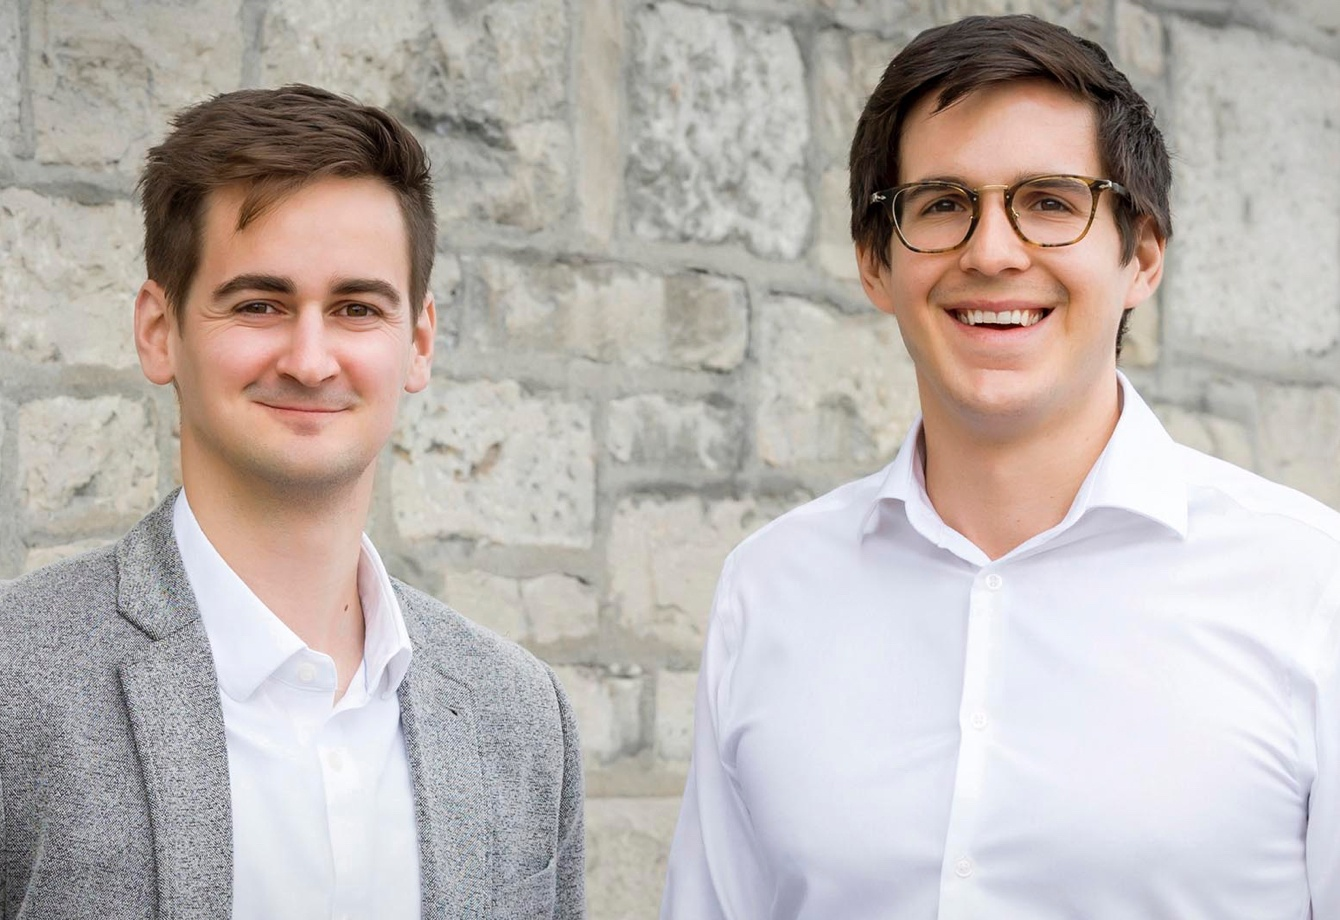 Poka Co-Founders Reflect on Raising $10M in Series A Funding